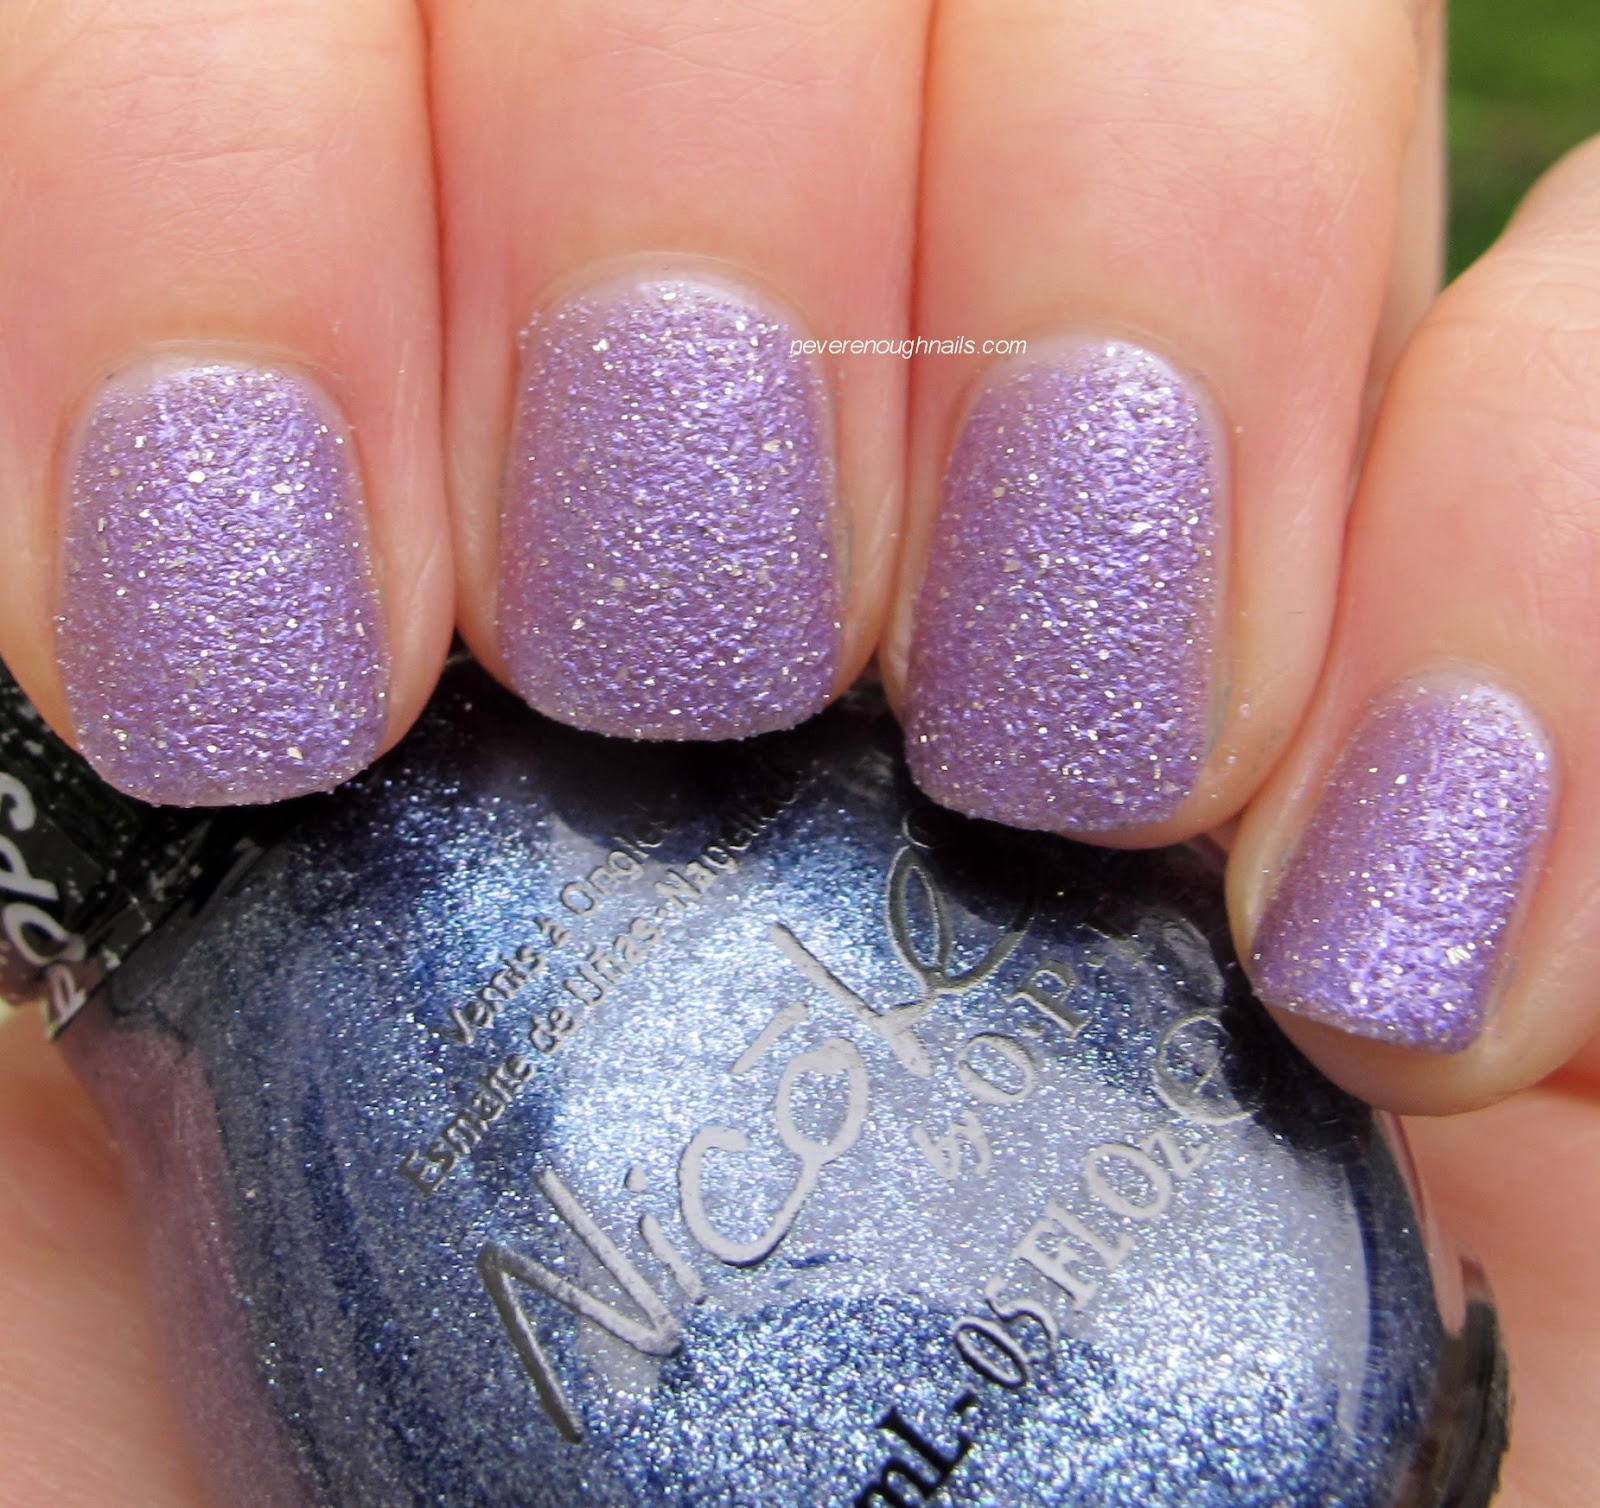 d79422eed70e Color  three coats Nicole by OPI I Lilac Gumdrops Top  none (unless  otherwise indicated) Application  good (out of poor